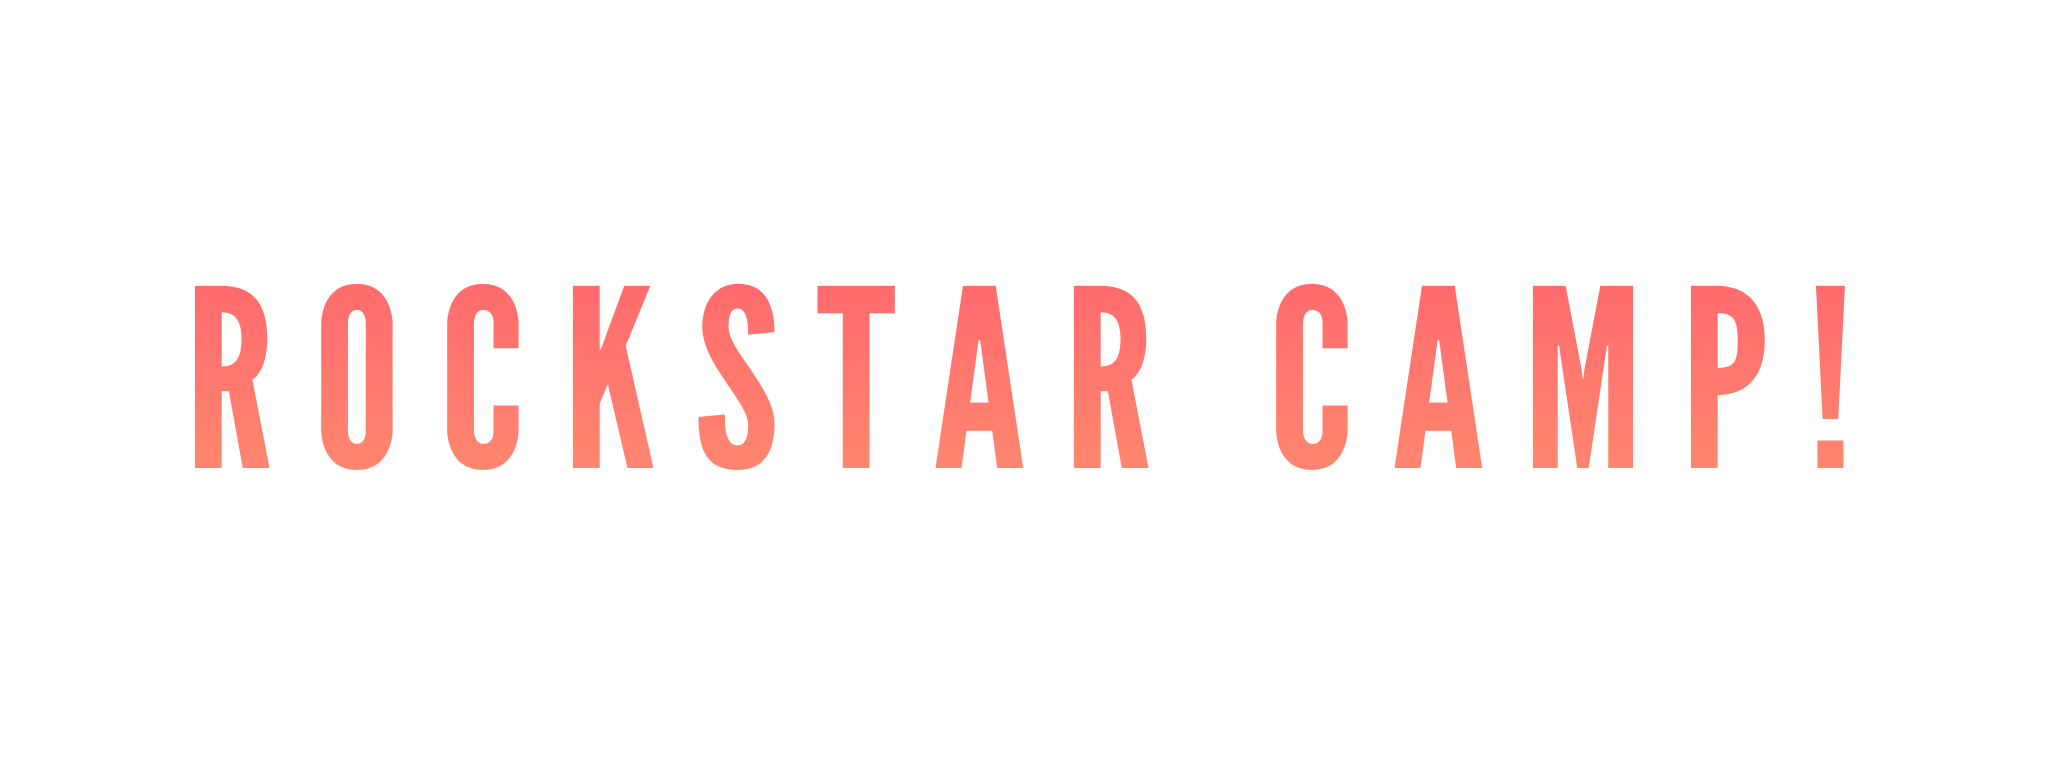 ROCKSTAR CAMP CONFIDENCE COACHING FOR WOMEN IDENTIFIERS